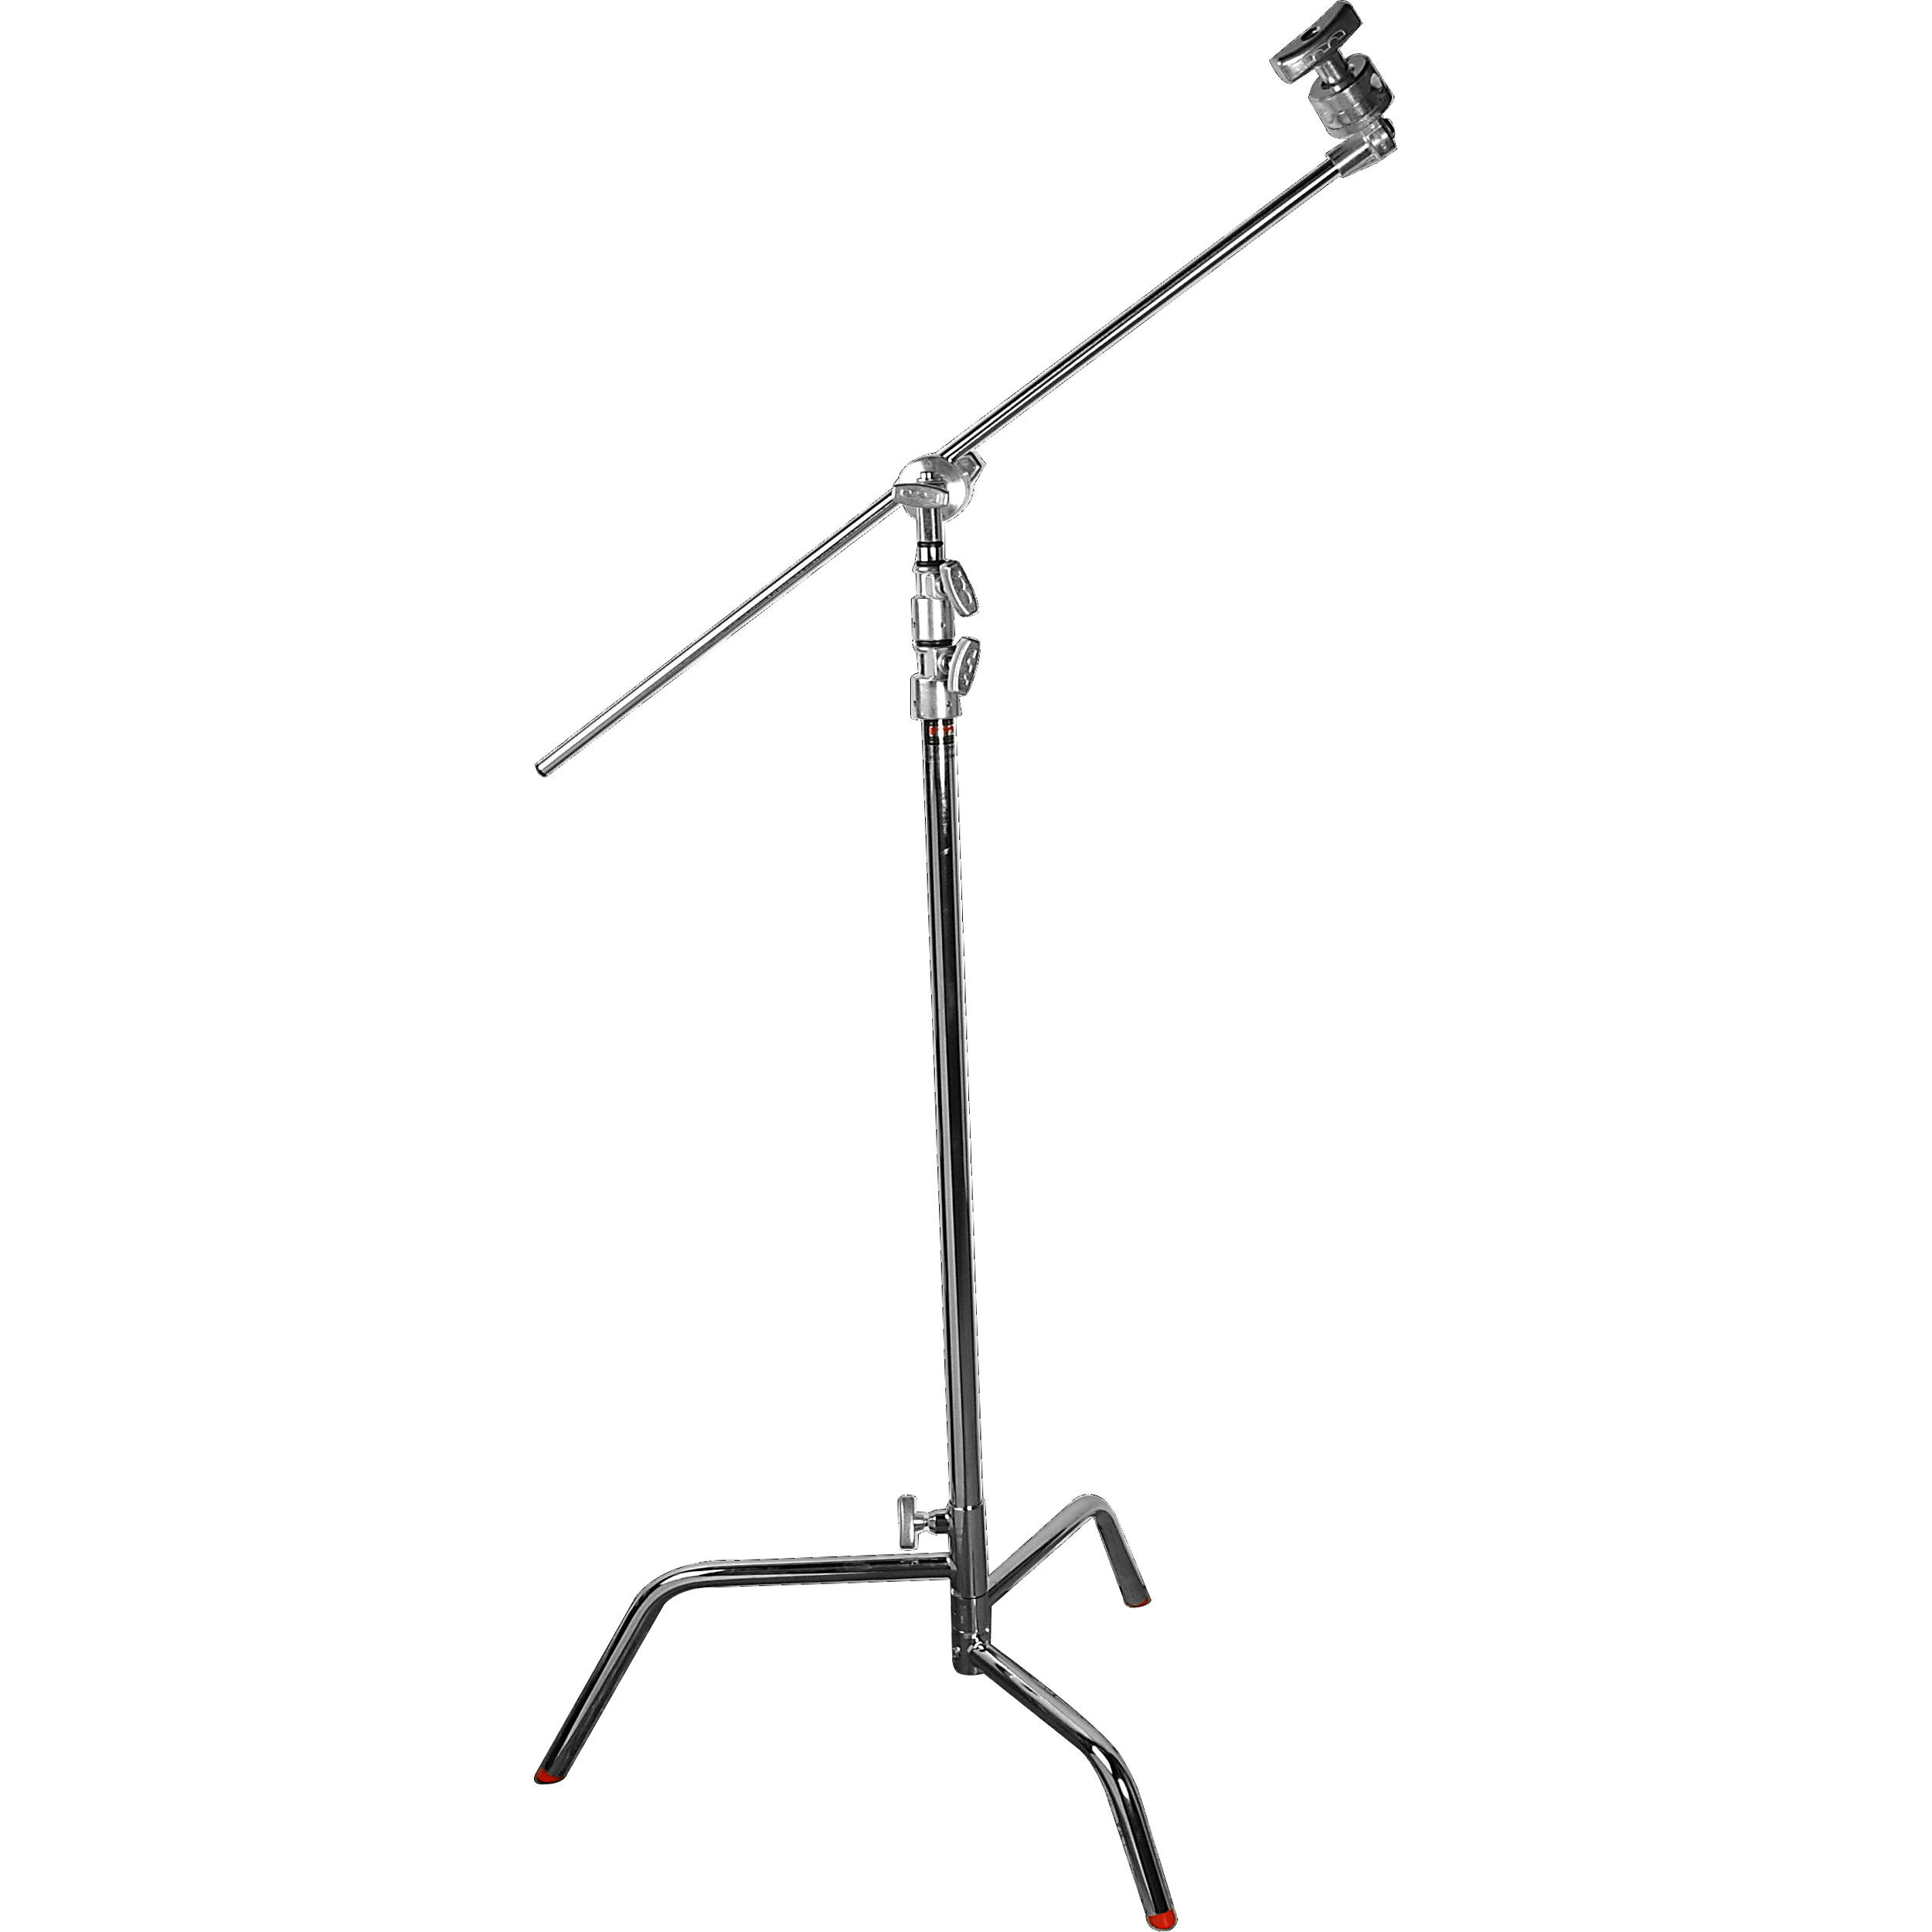 Responsible Super 2 Dual Arm White Led Music Stand Light Lamp New Clients First Book Lights